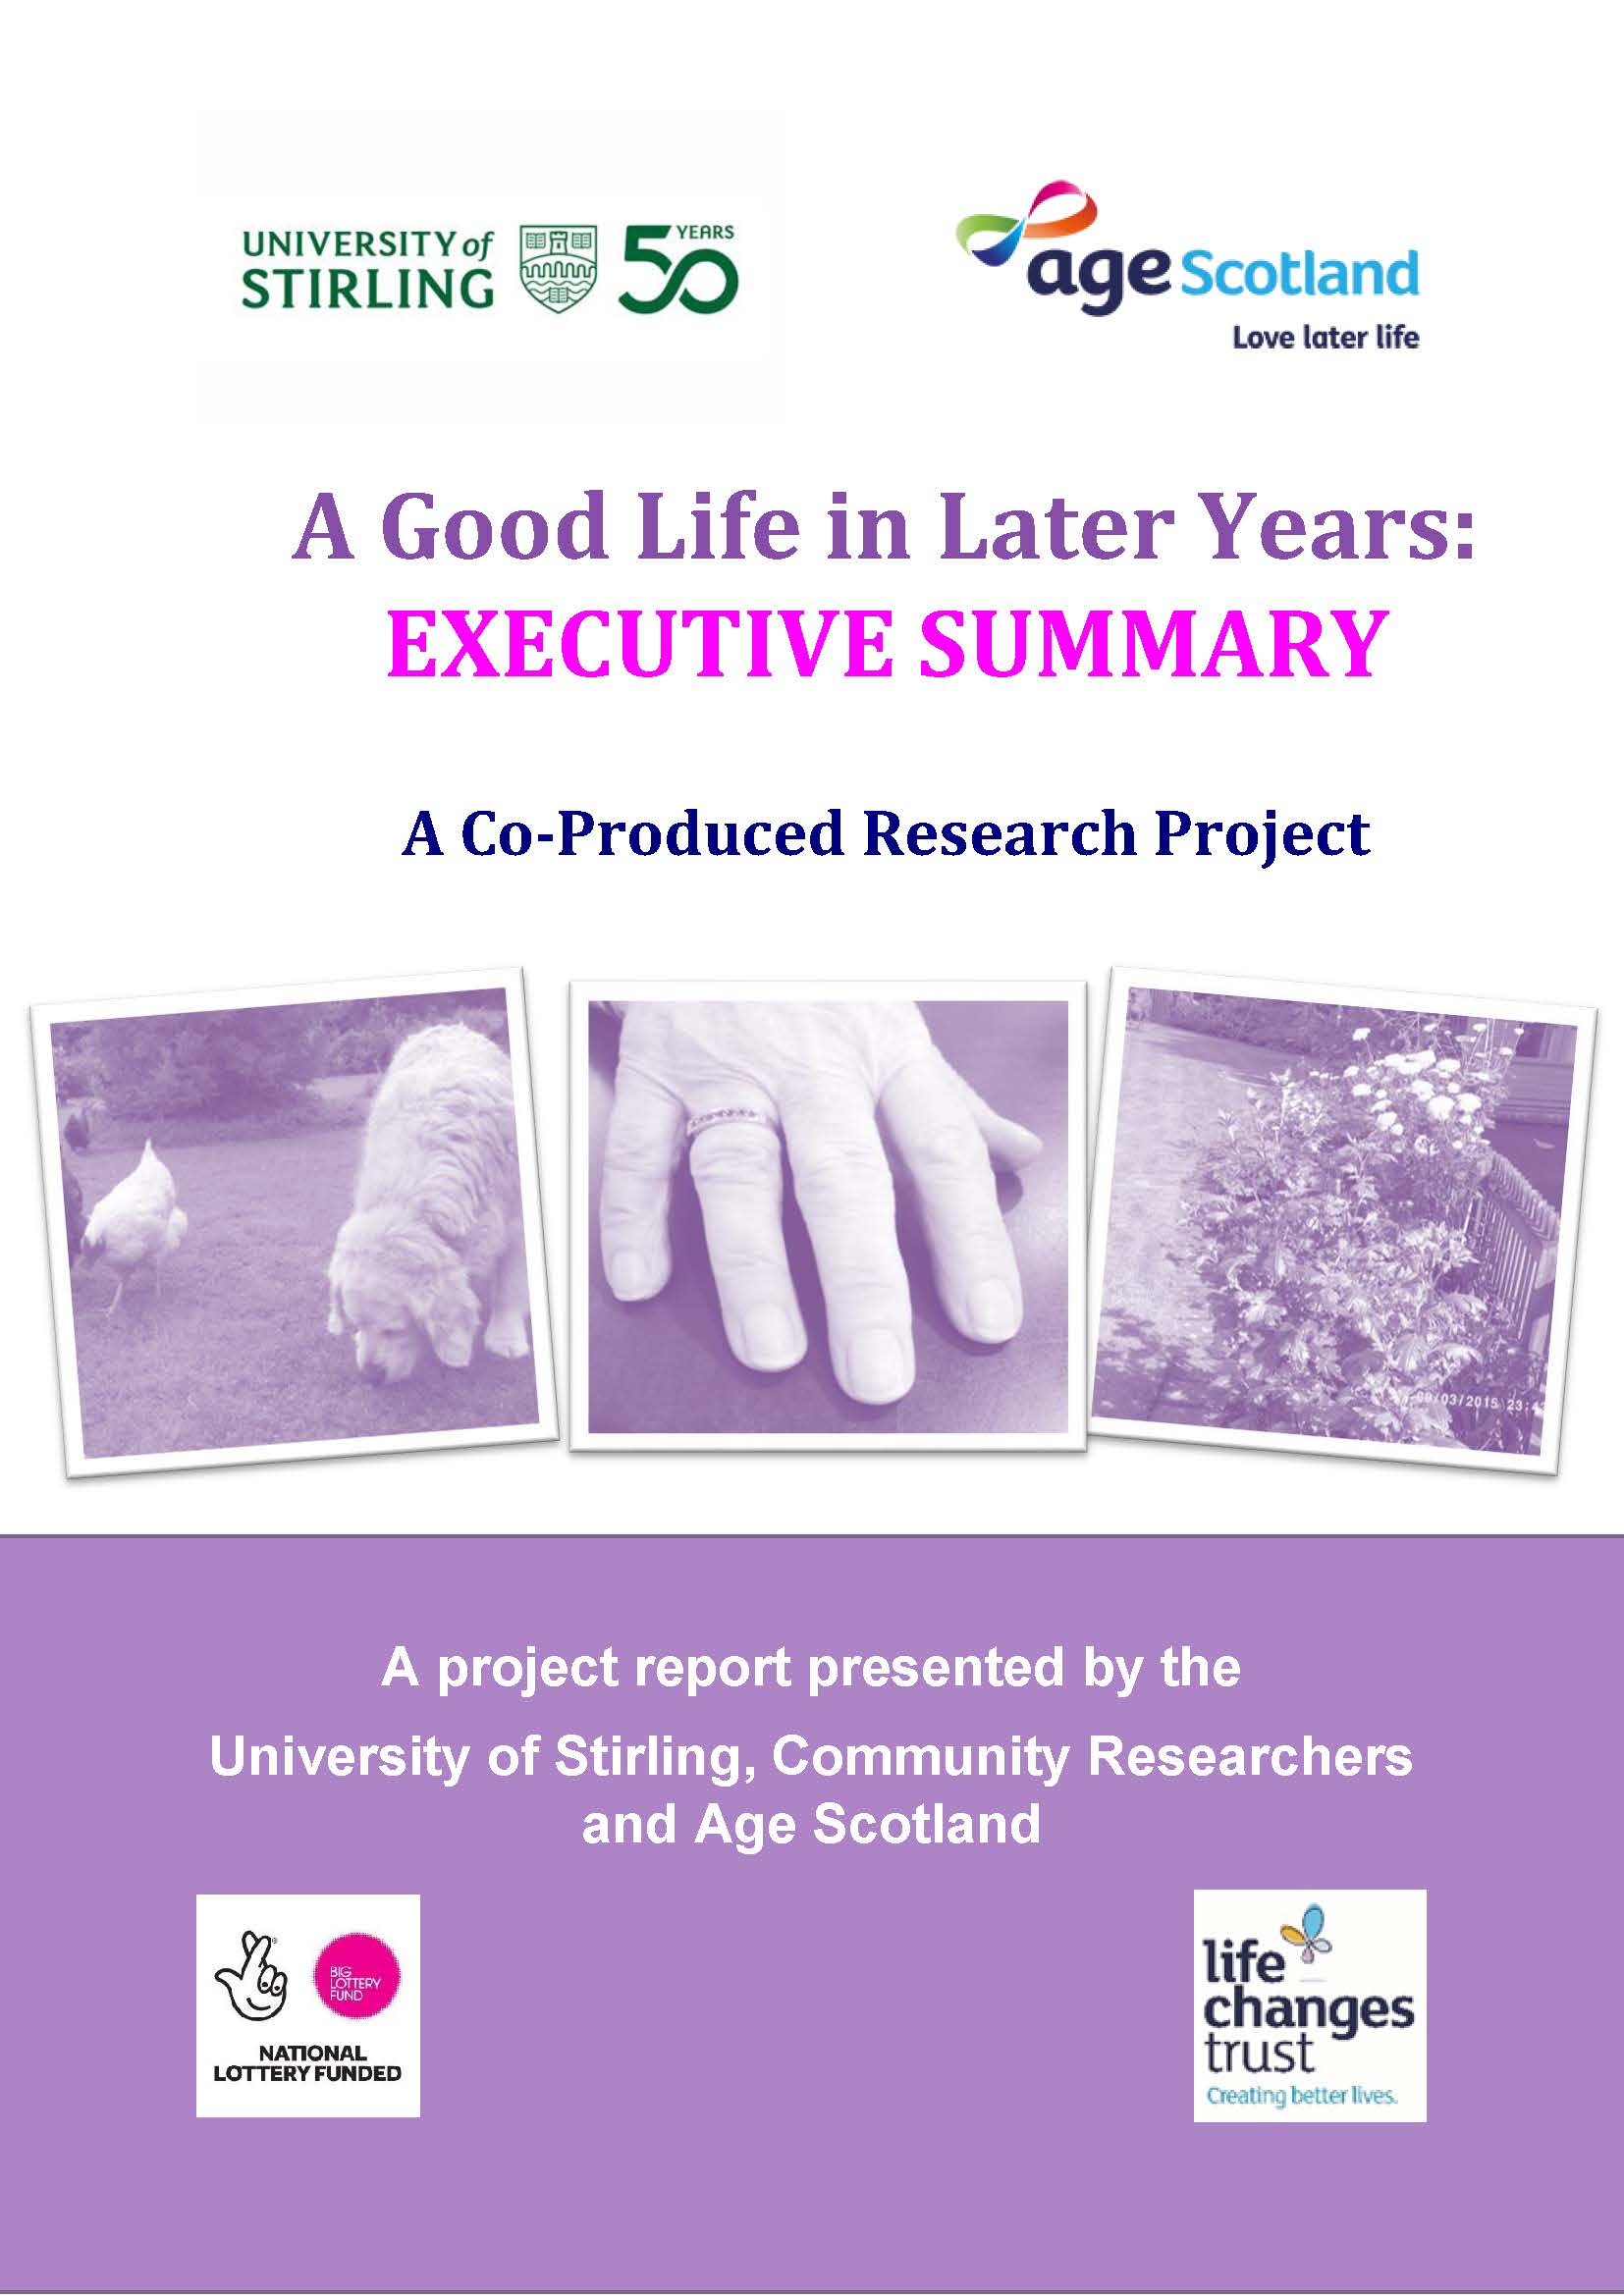 A Good Life In Later Years - Executive Summary